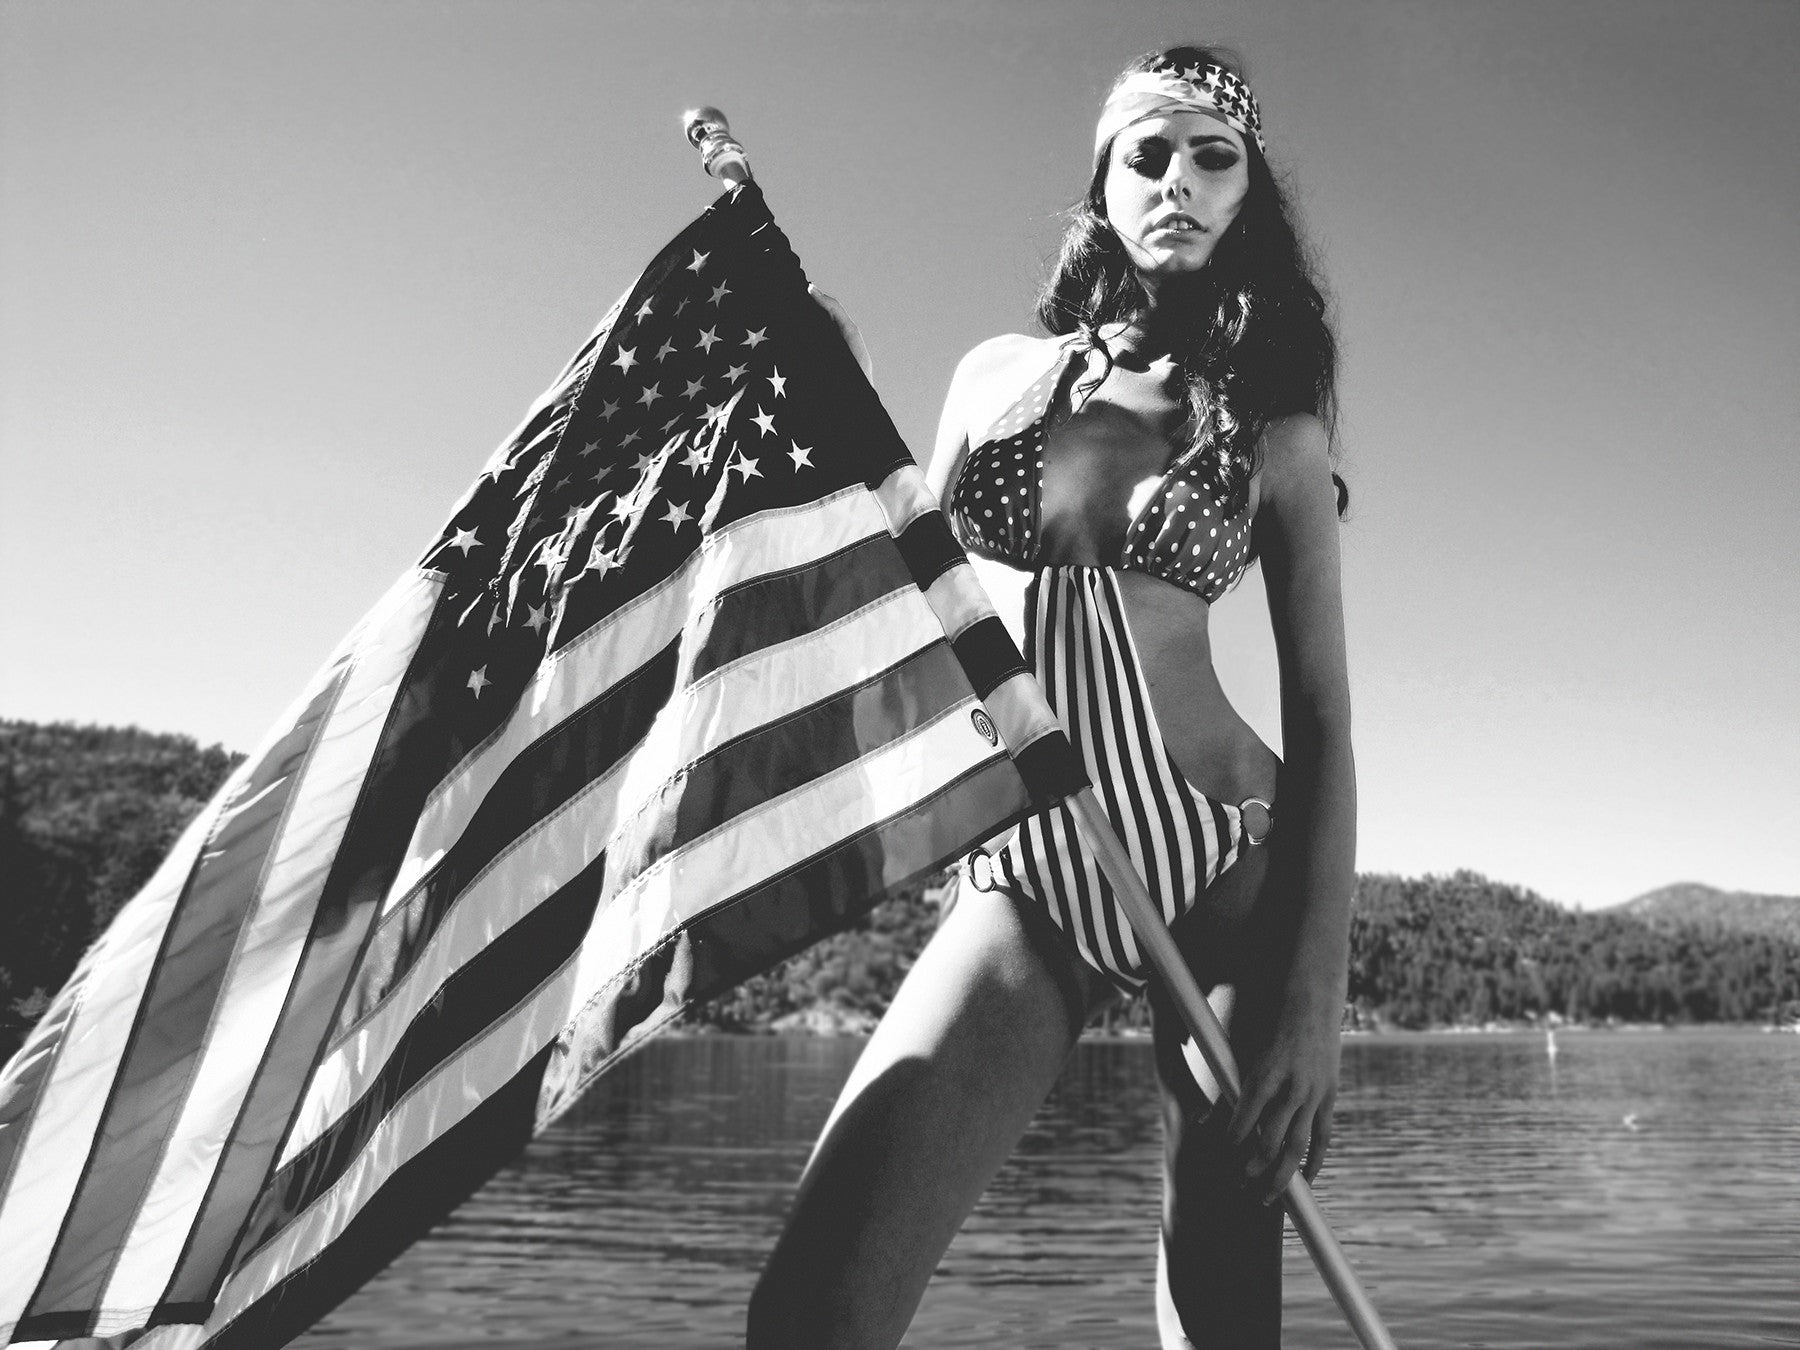 New Arrival! The Patriot Monokini